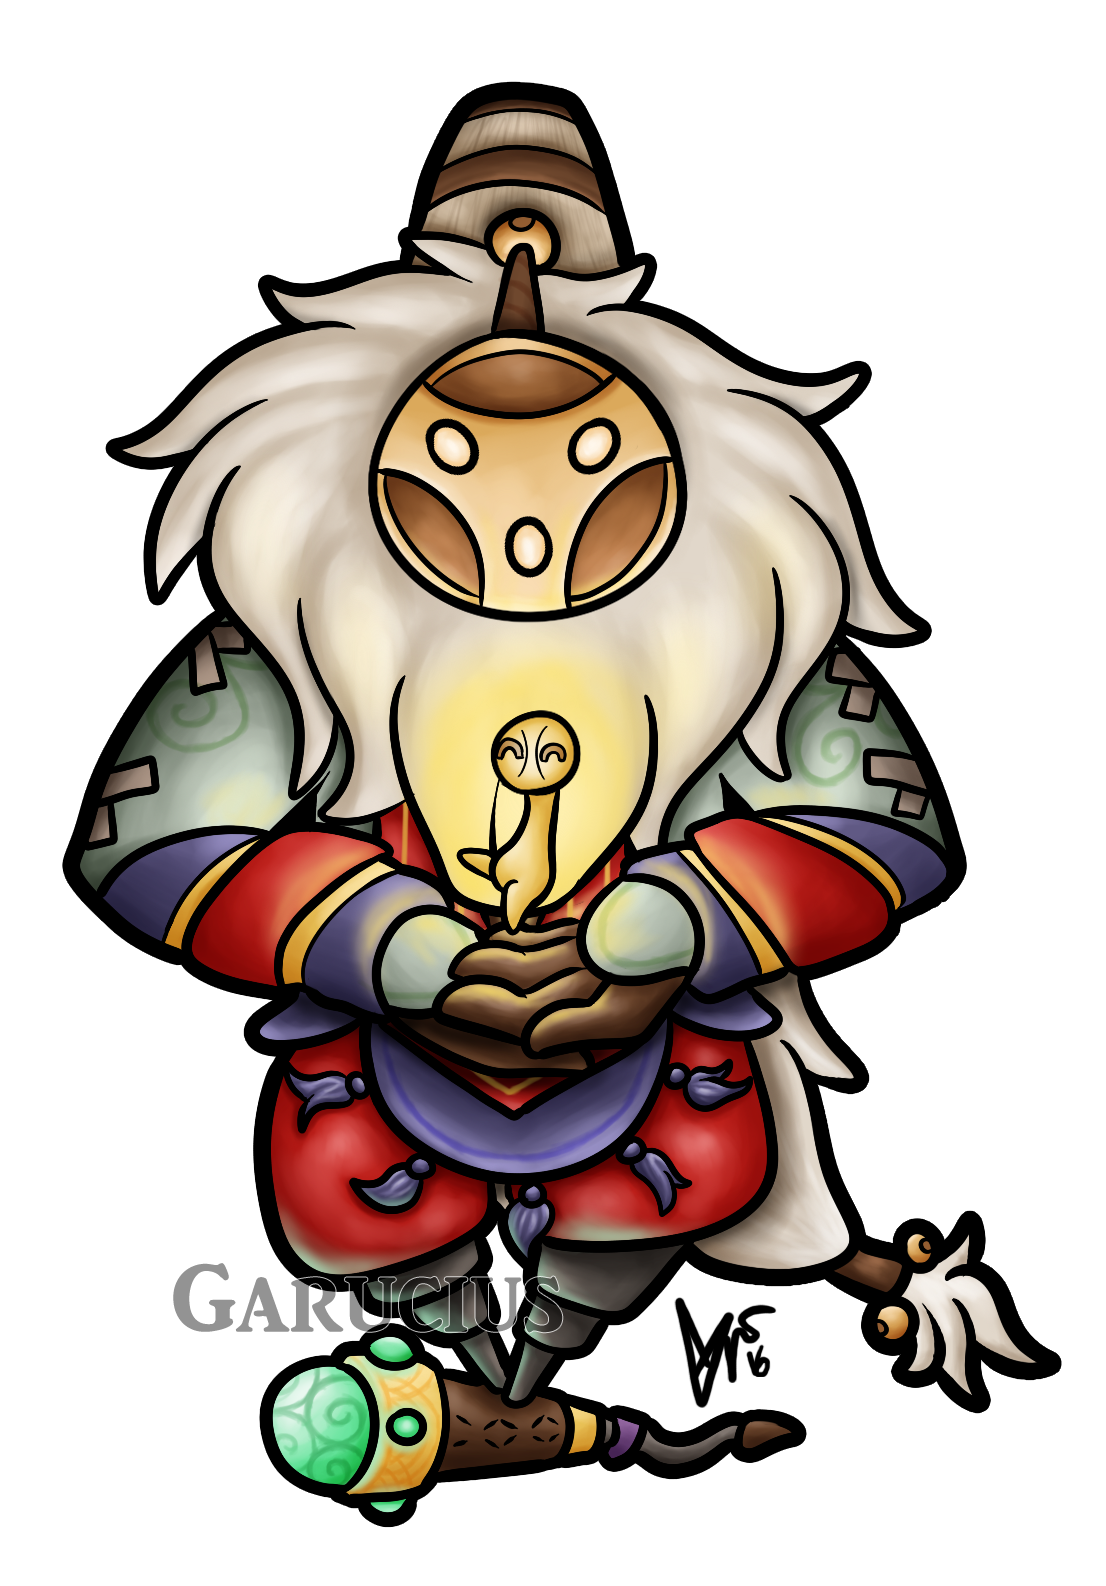 Chibi Bard by Garucius HD Wallpaper Artwork Fan Art League of Legends lol  (2)